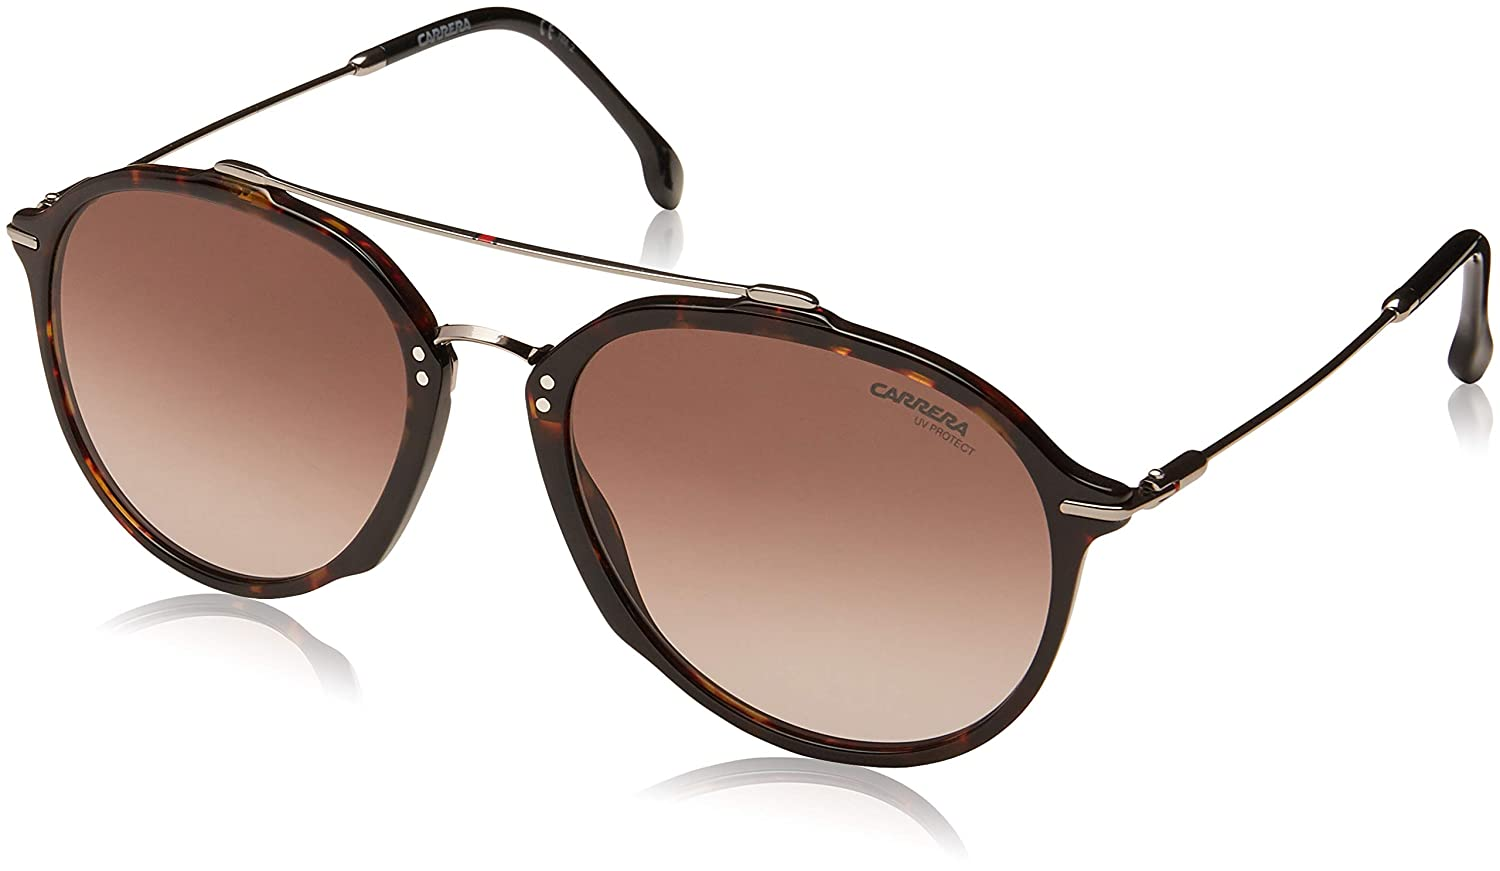 1d1d2c6444 Amazon.com  Carrera 171 S 086 HA Dark Havana Plastic Aviator Sunglasses  Brown Gradient Lens  Clothing